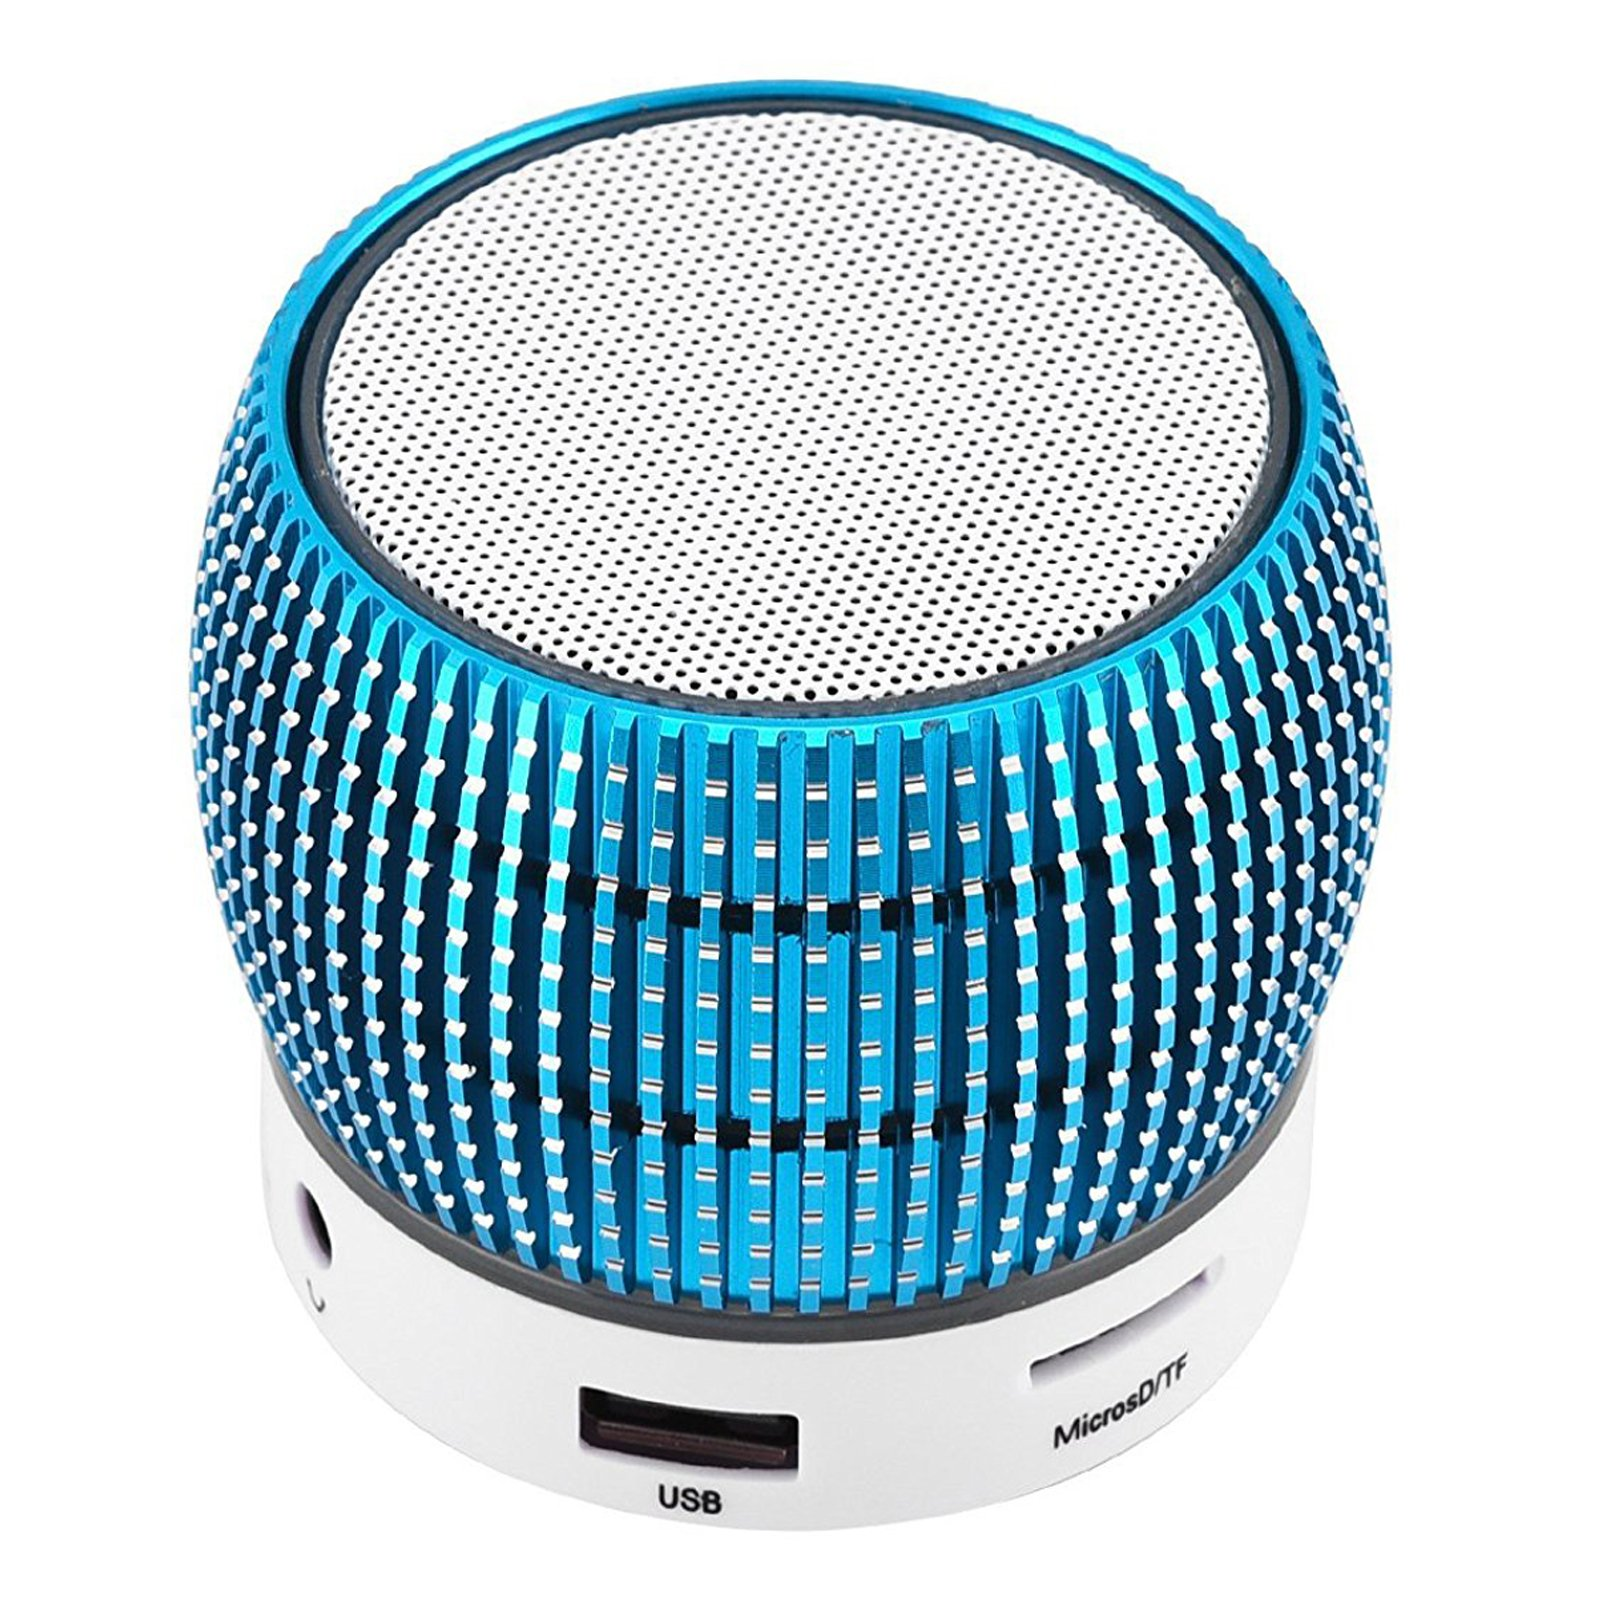 Bluetooth Speakers Wireless LED Light Mini Speaker Built-in Microphone Home Travel Outdoors Speaker for Android Samsung Galaxy Note 8 5 4 S9 S8 S7 S6 Edge iPhone Nexus iPad Tablets PC Blue